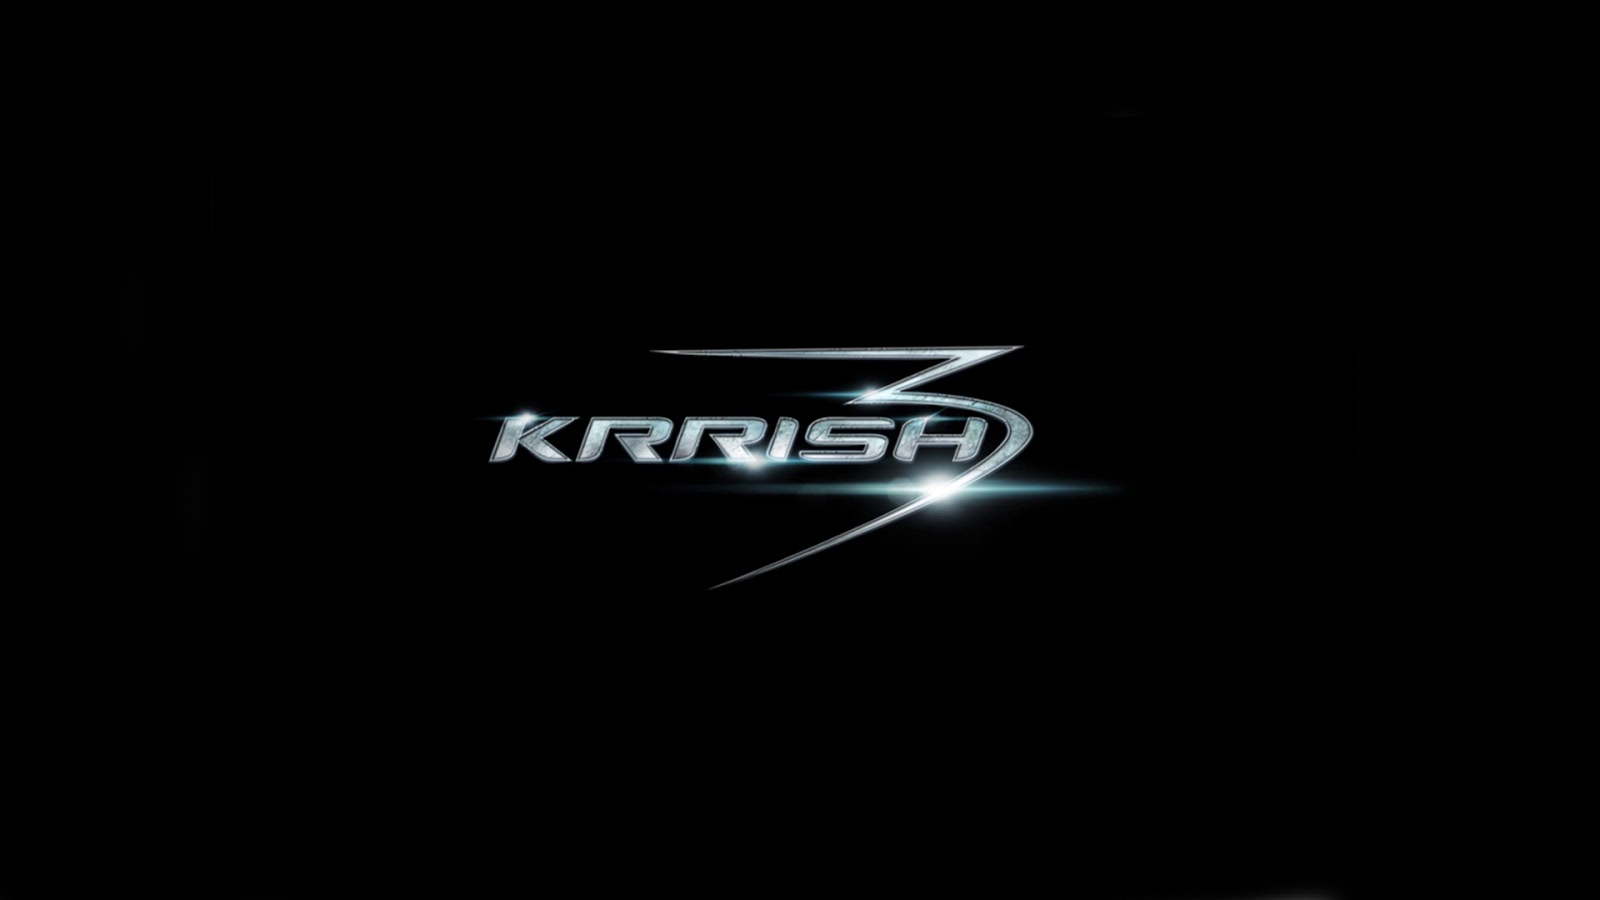 Krrish-3 Latest HD wallpapers 1080p | HD Wallpapers (High Definition) | Free Background